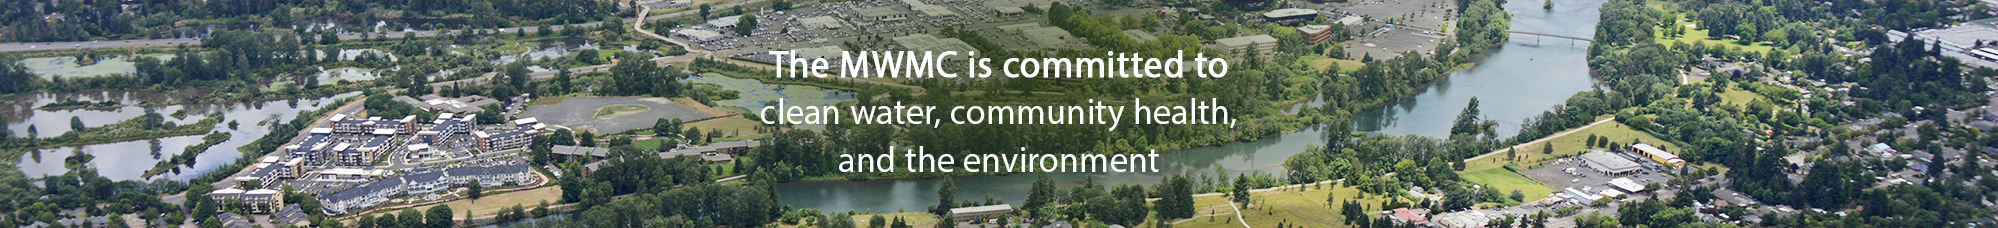 MWMC website header - The MWMC is committed to clean water, community health, and the environment.